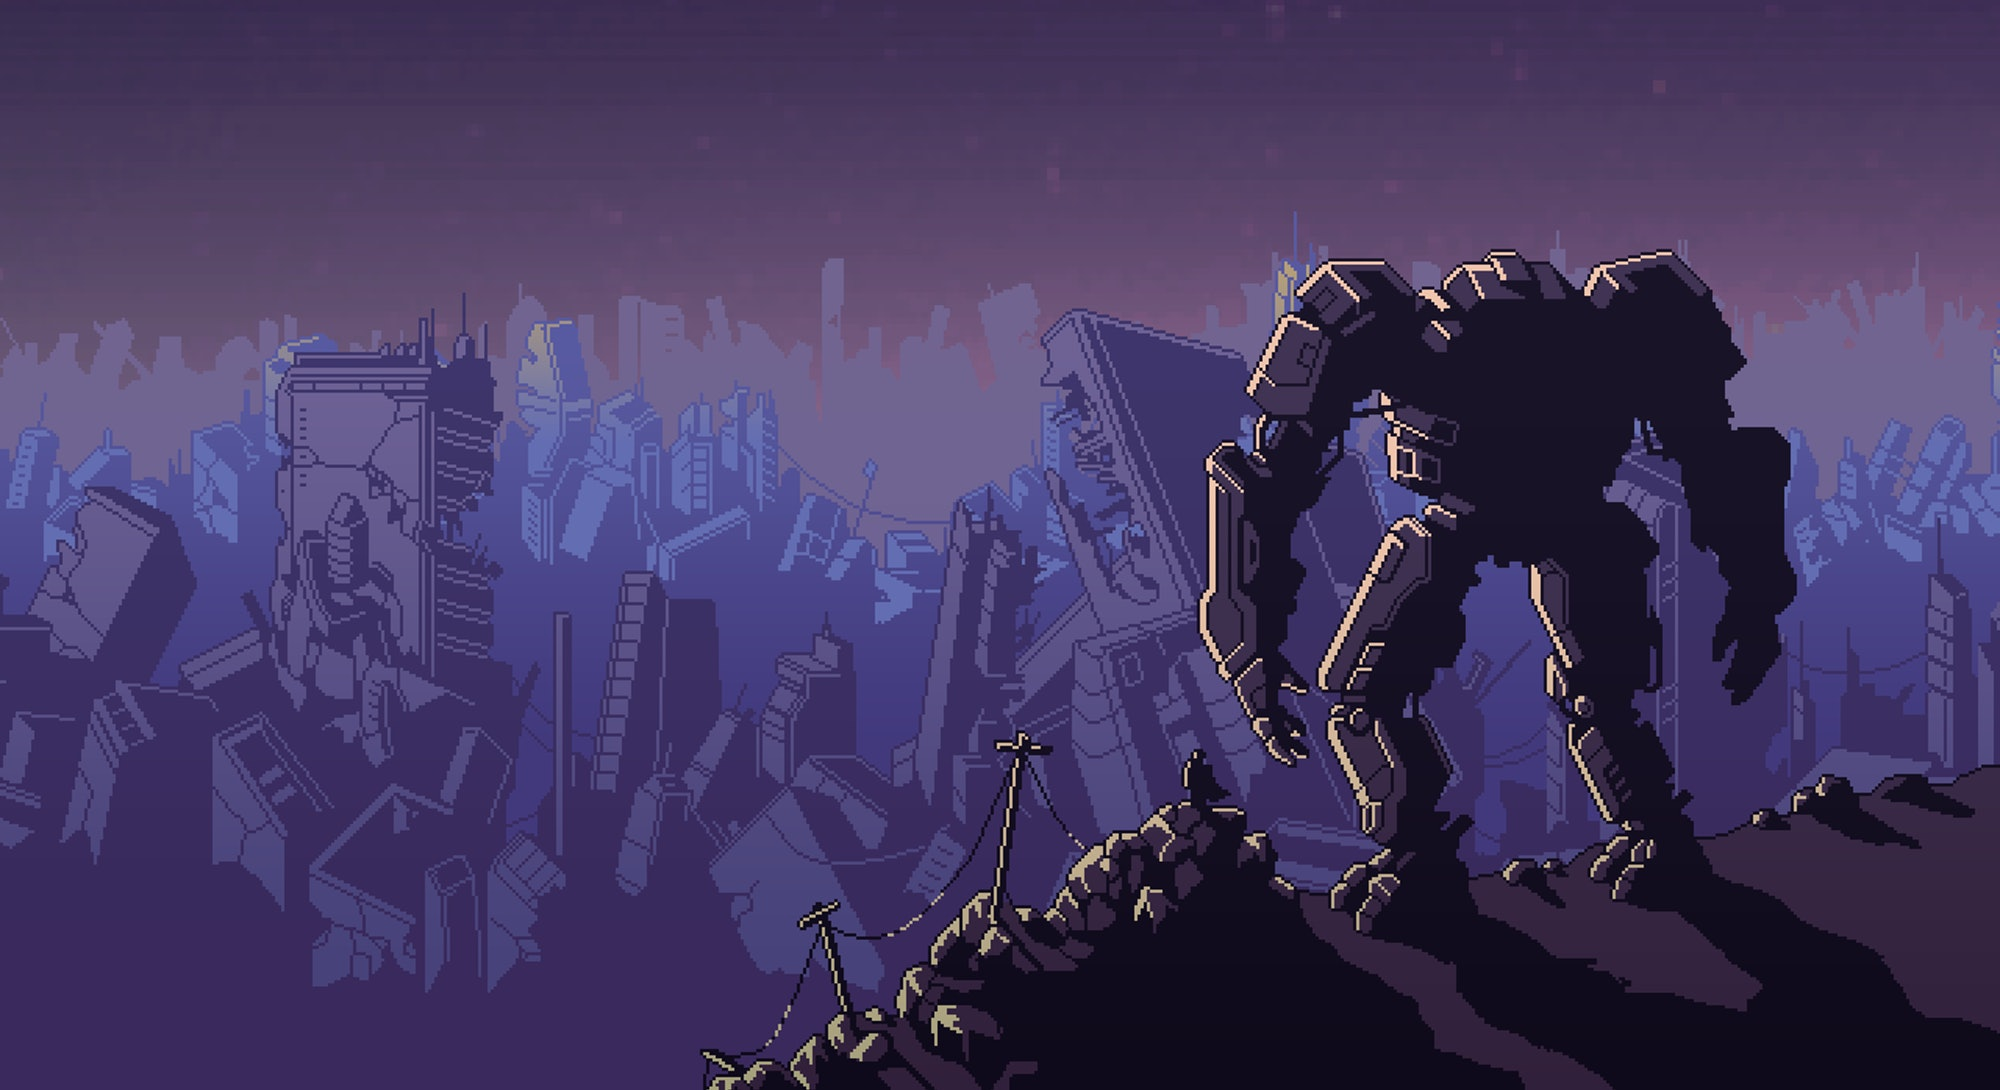 robot in front of ruined city from Into the Breach